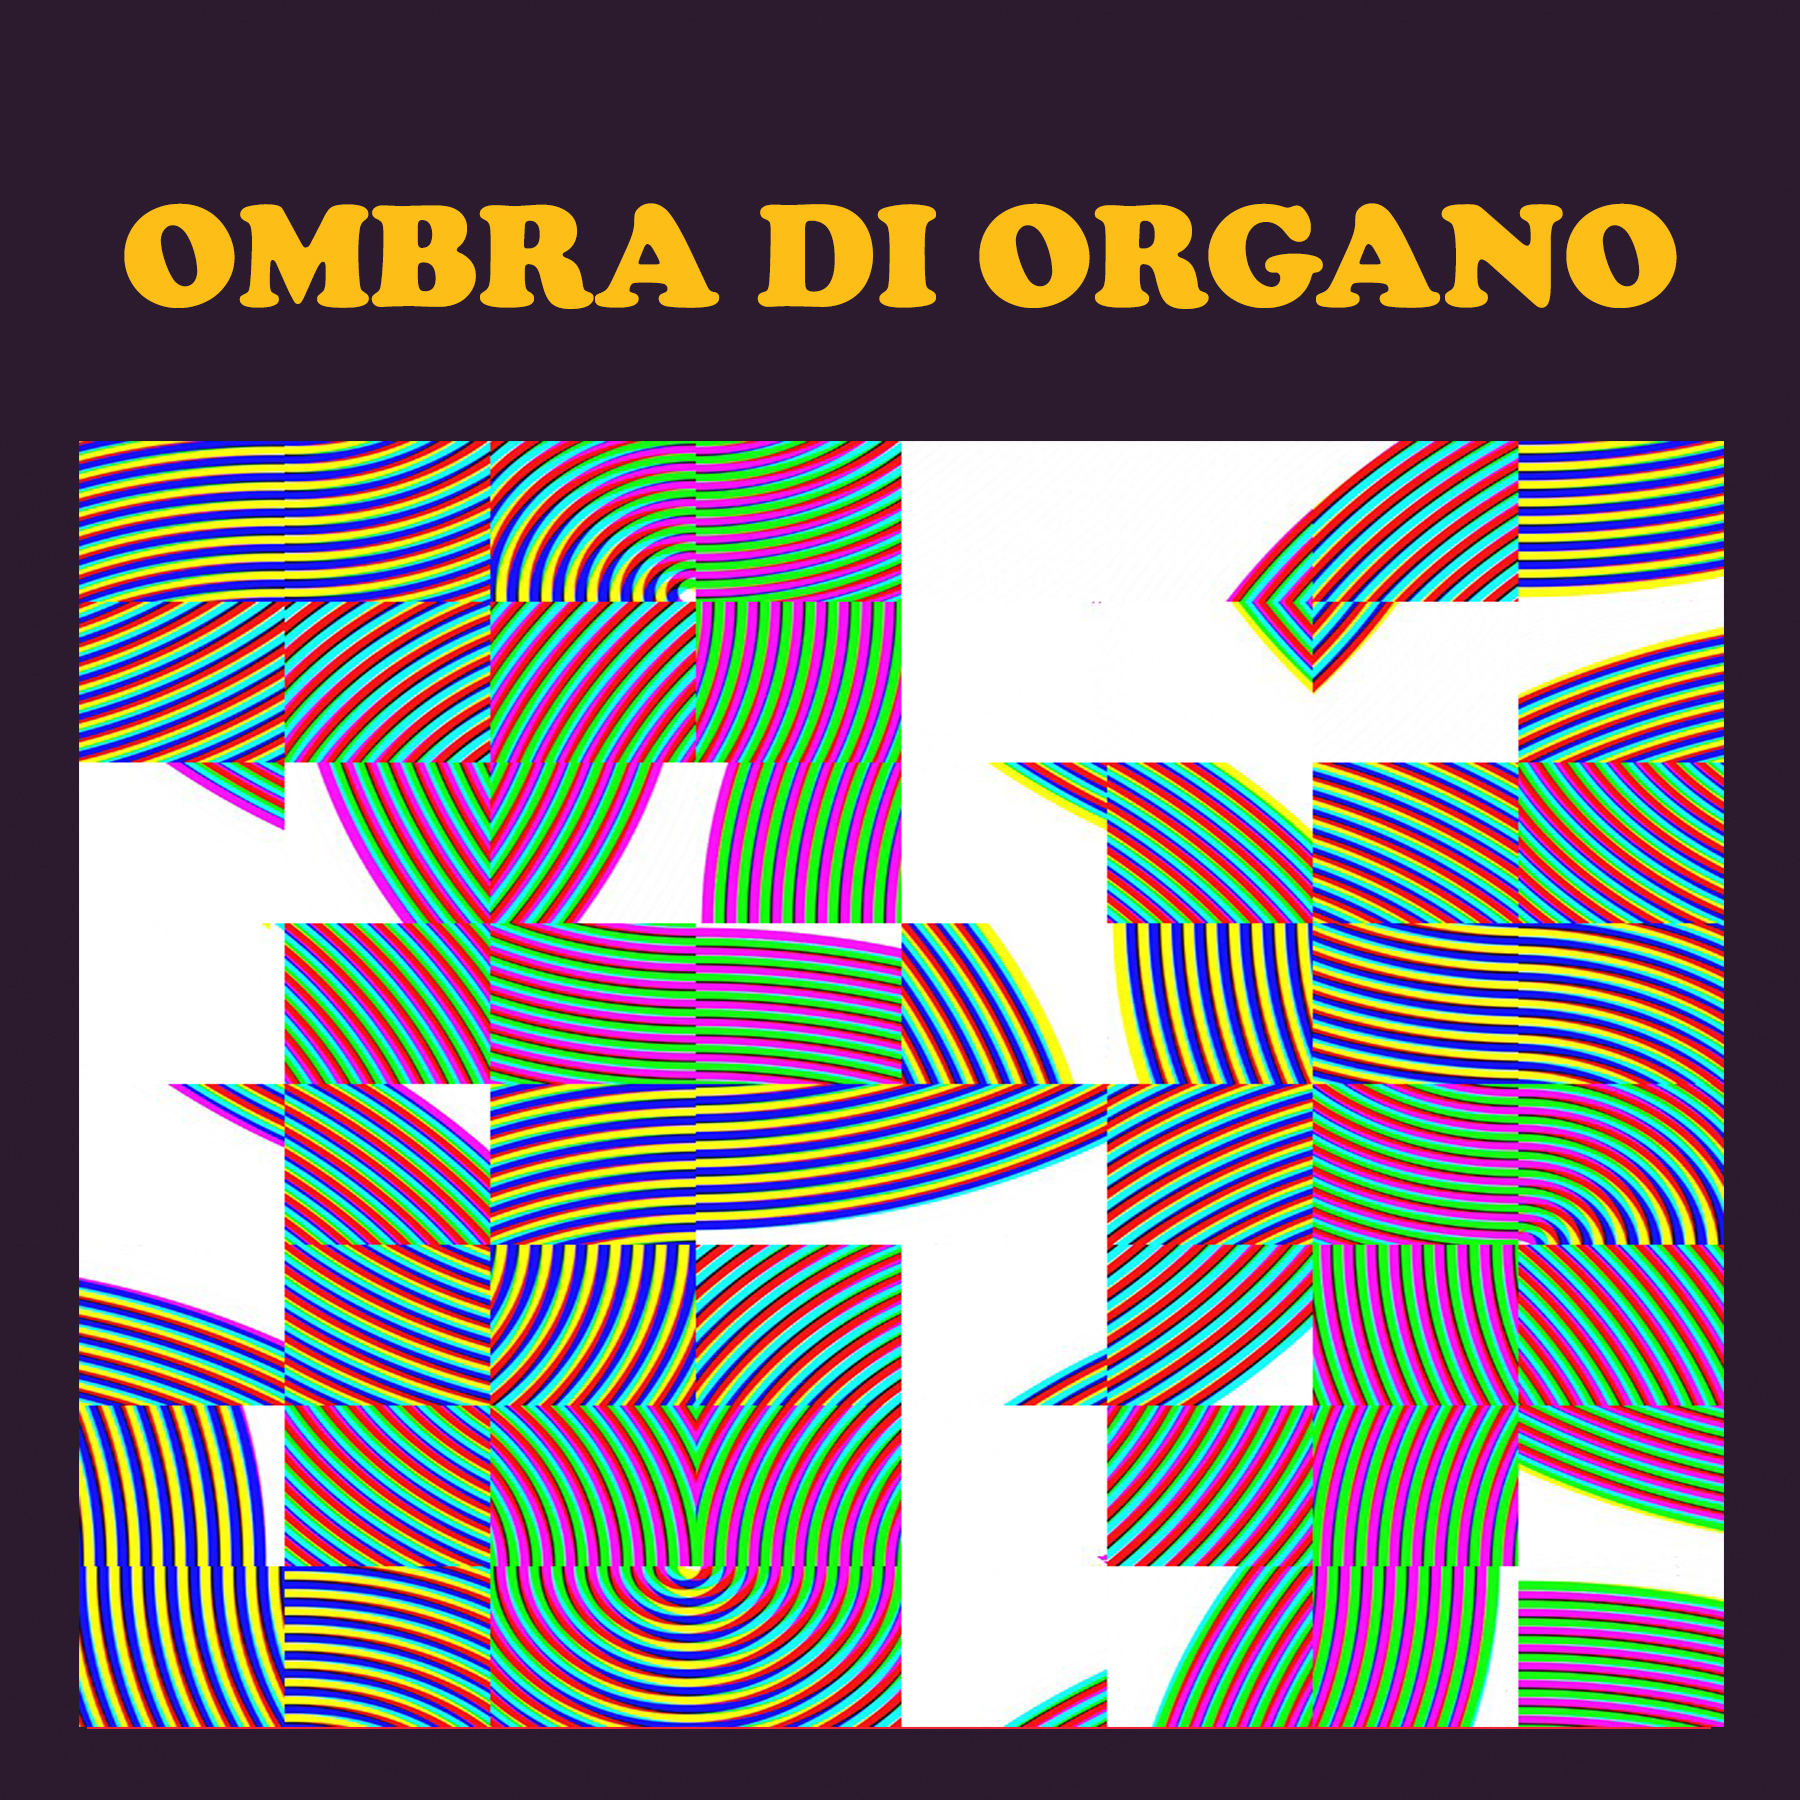 Ombra di Organo, Keefe Jackson, Ryan Packard, Manuel Troller, Astral Spritis, Astral Editions